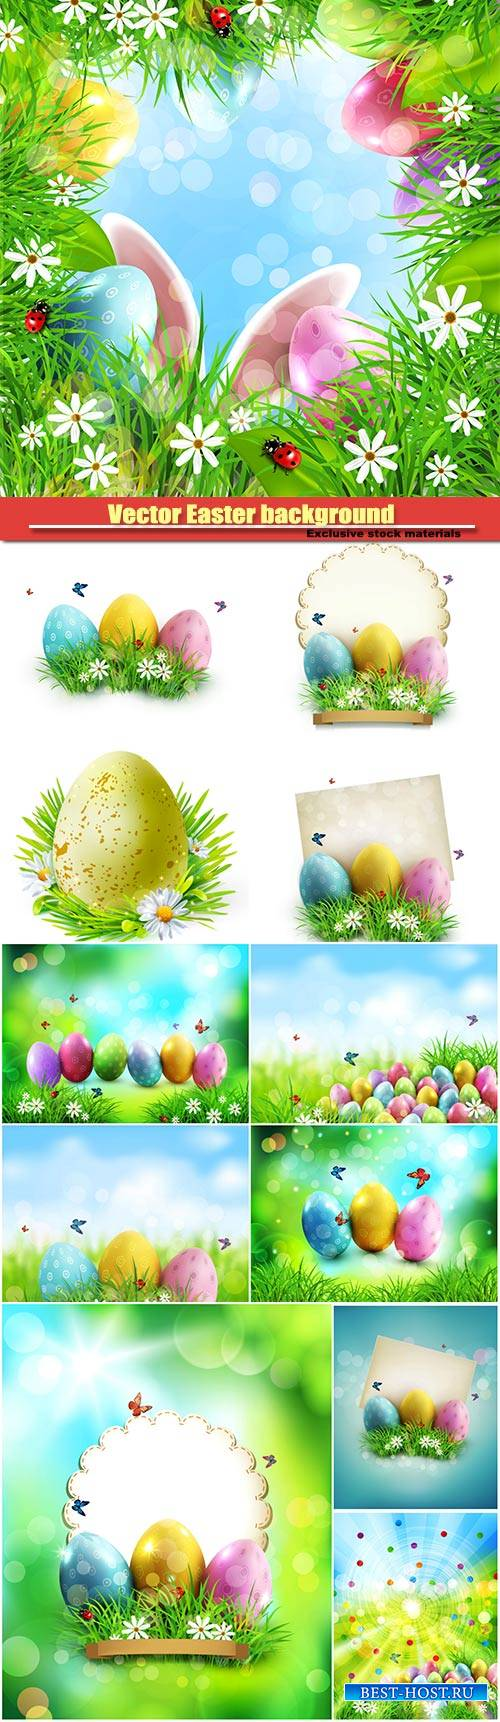 Vector Easter background, easter eggs in green grass with white flowers, bu ...